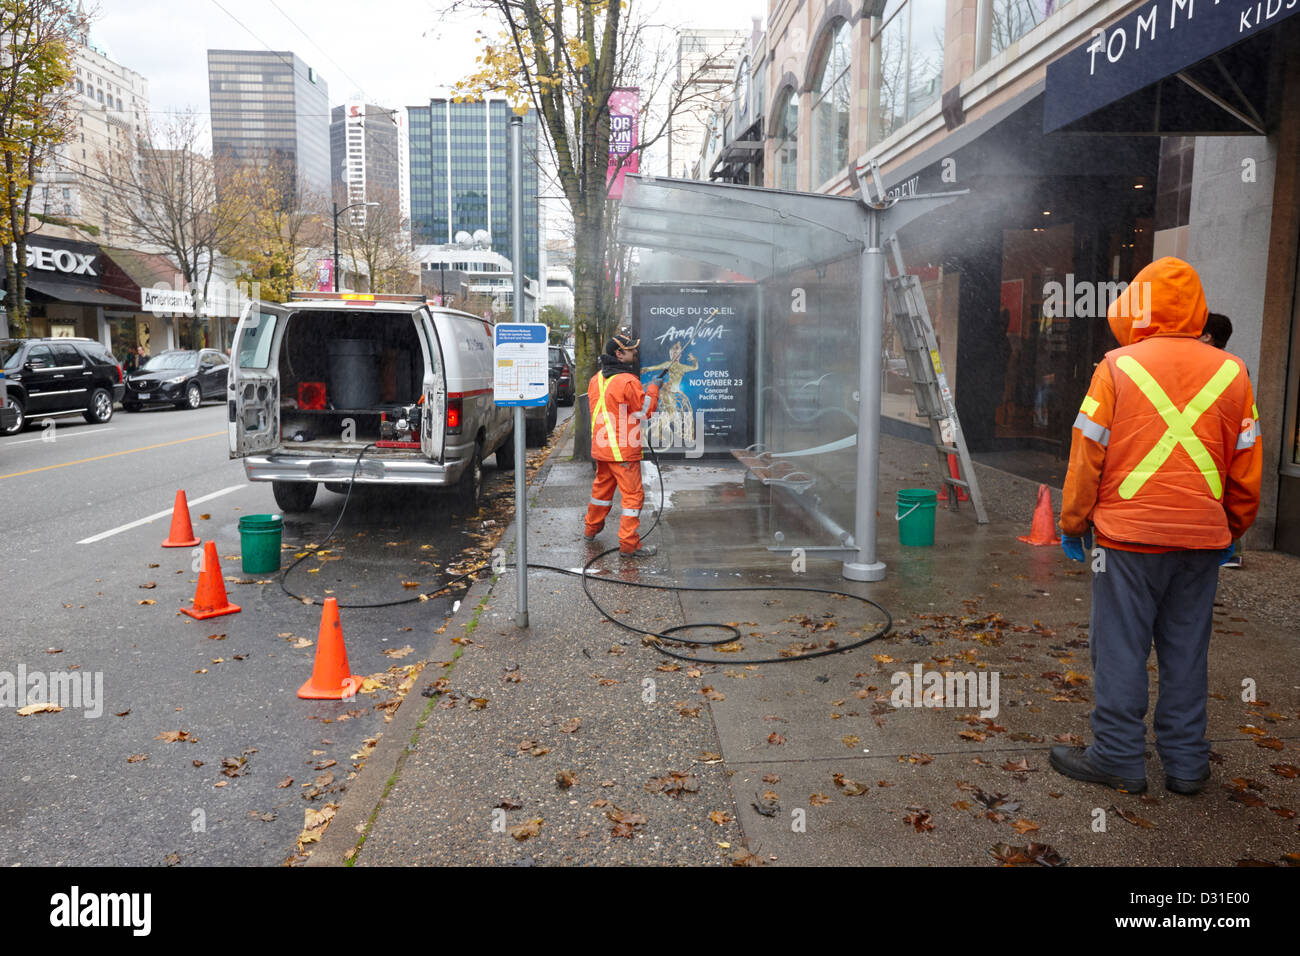 area cordoned off by private company cleaning team cleaning